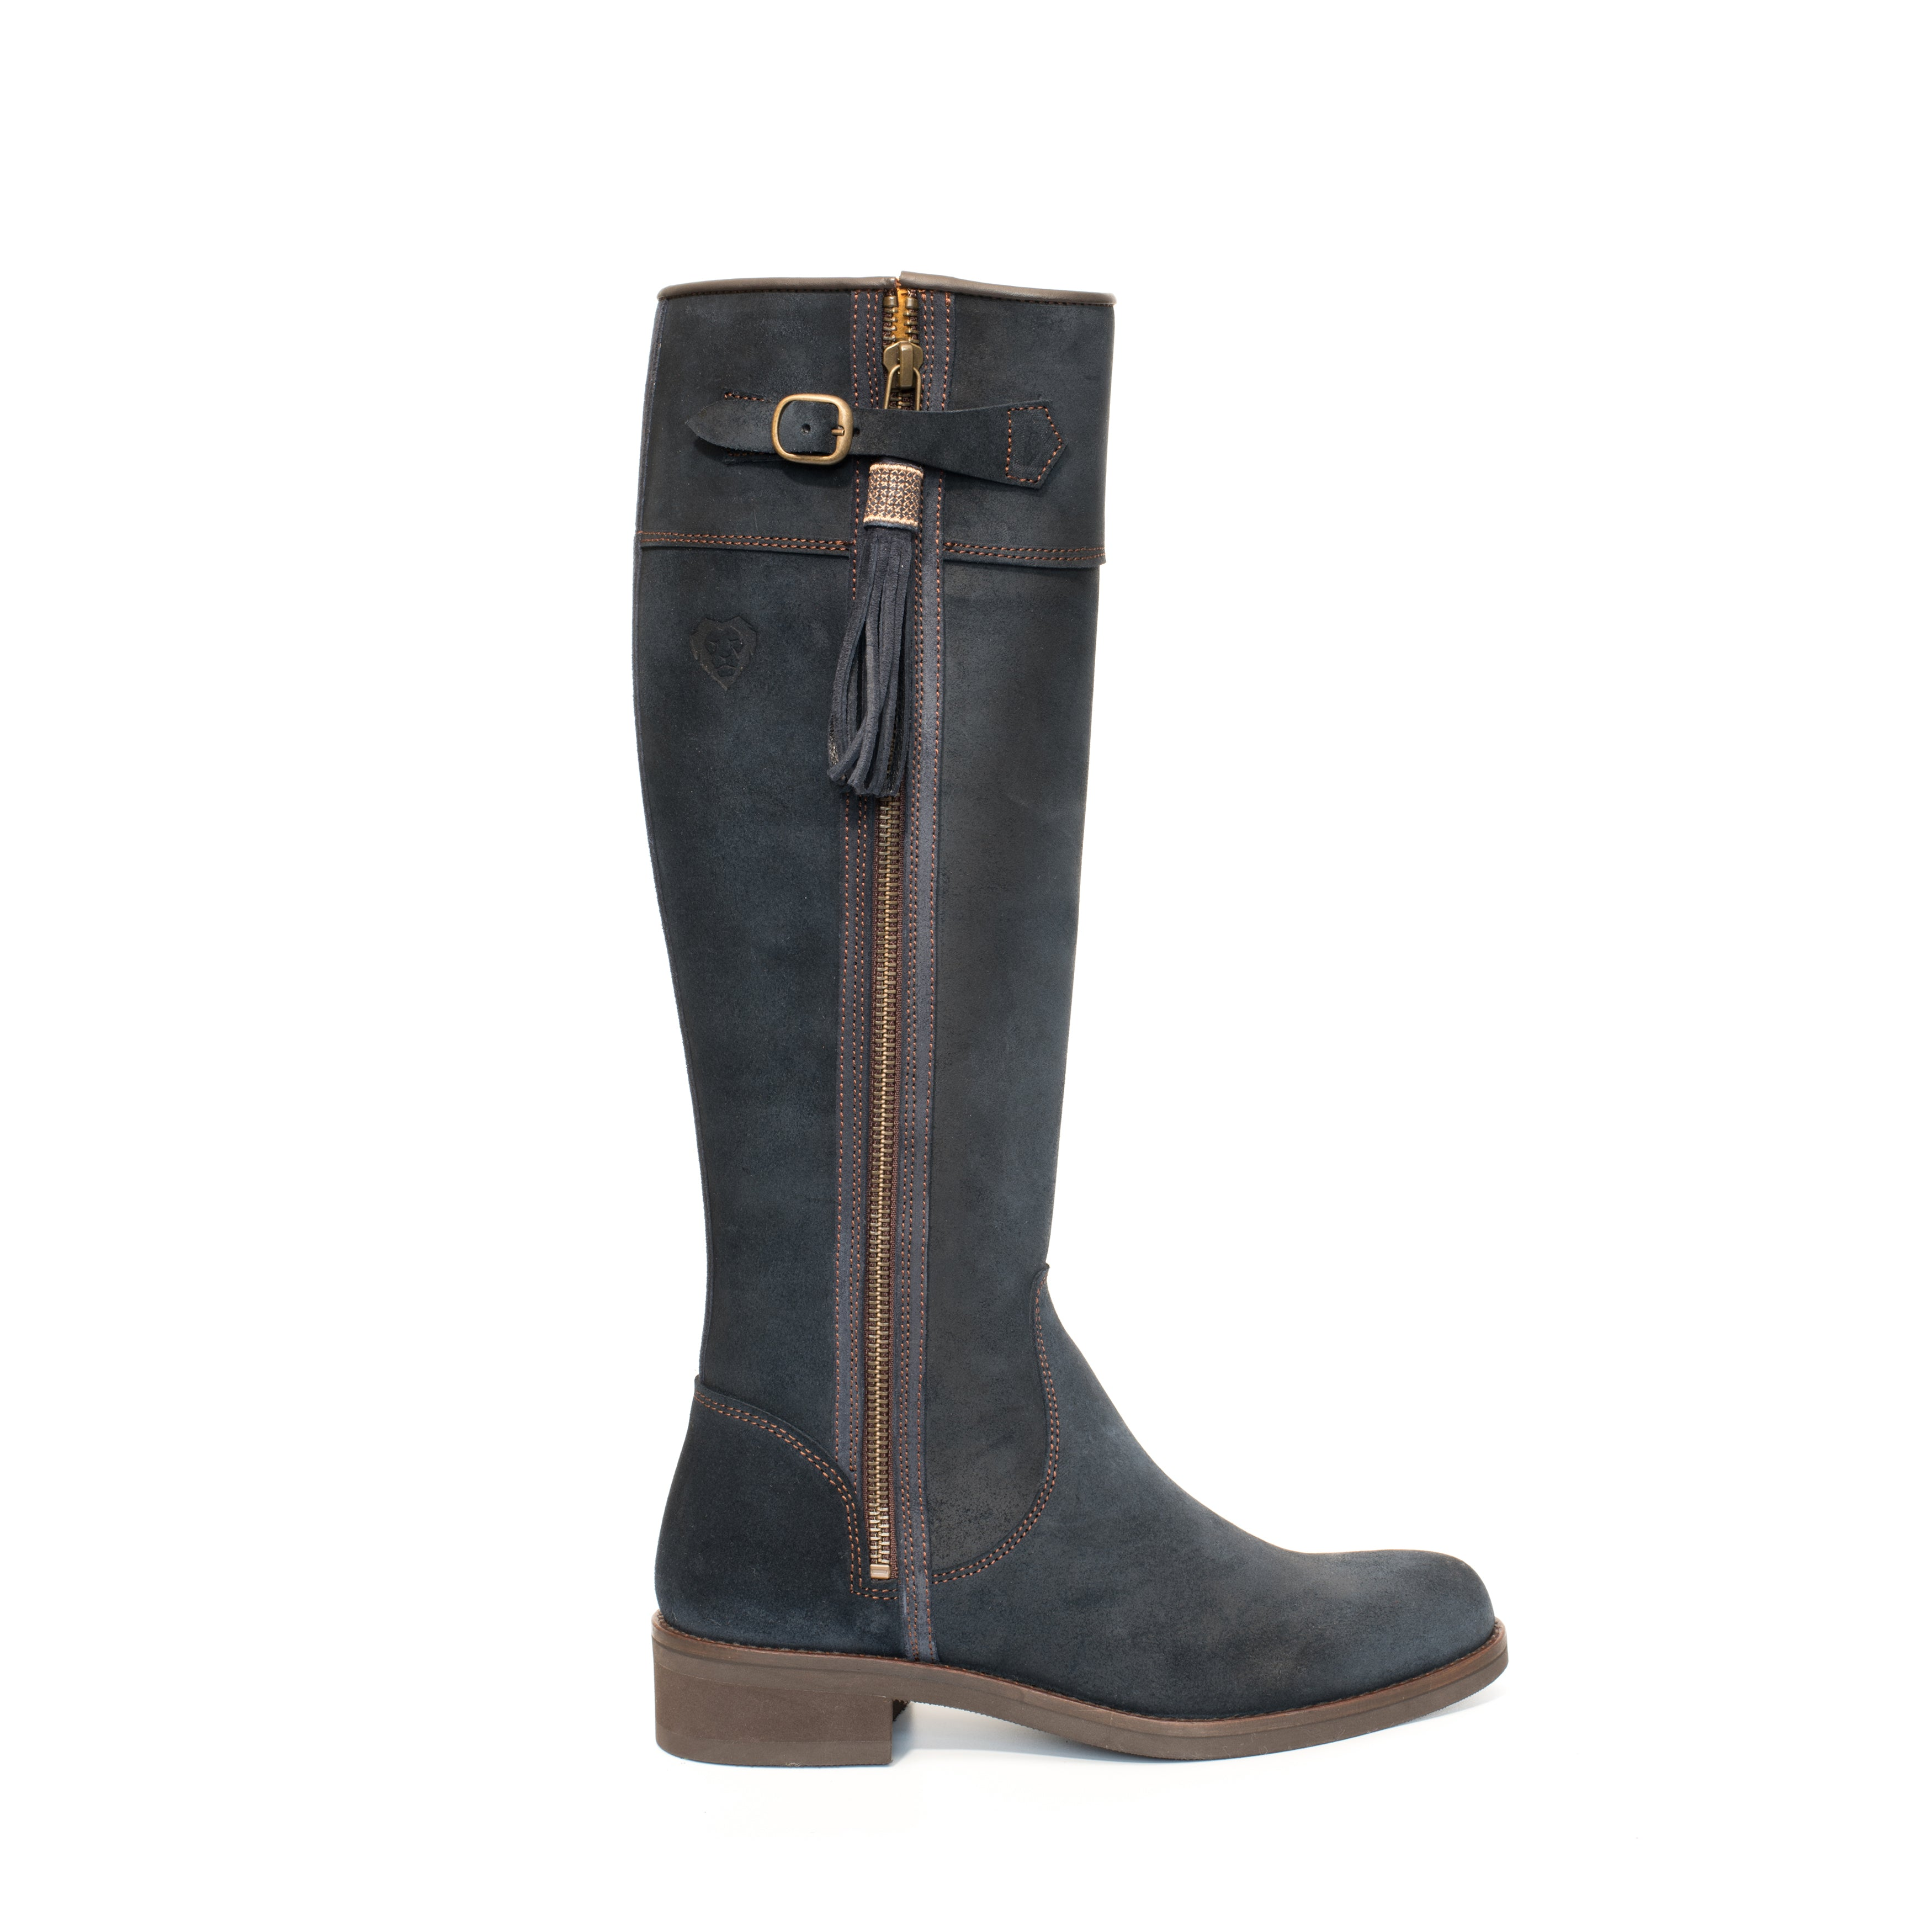 Boots with flexible light weight sole